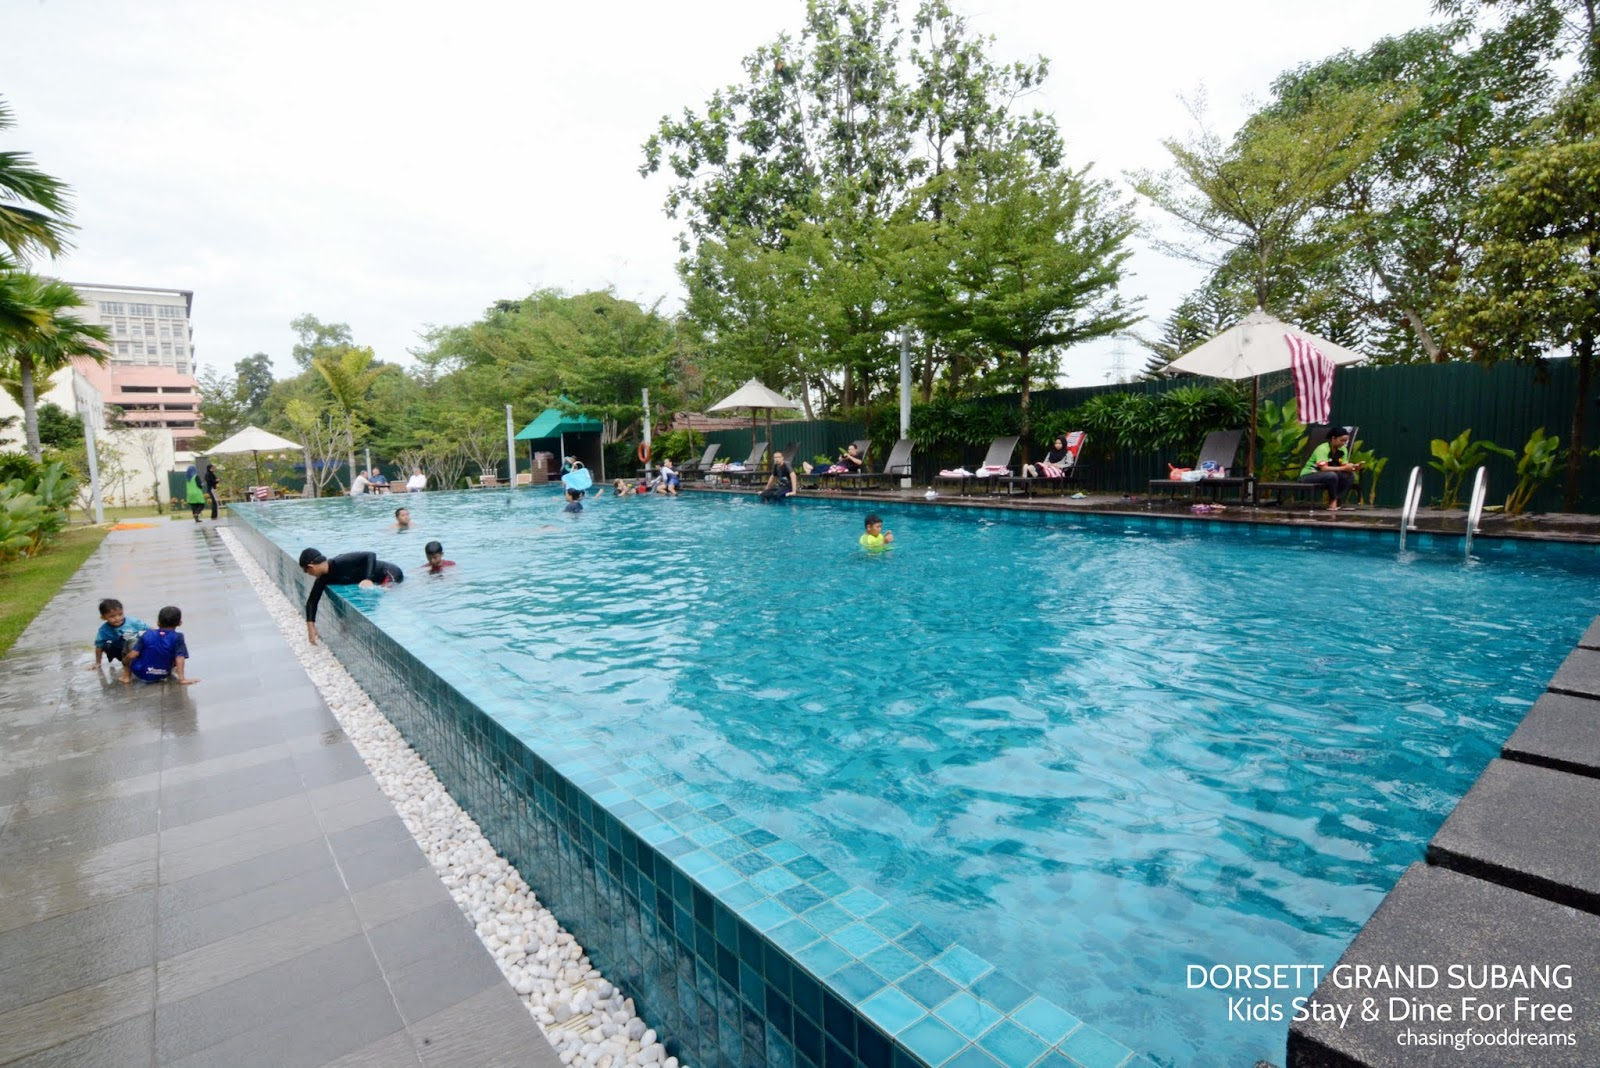 CHASING FOOD DREAMS: Dorsett Grand Subang Kids Stay & Dine For Free